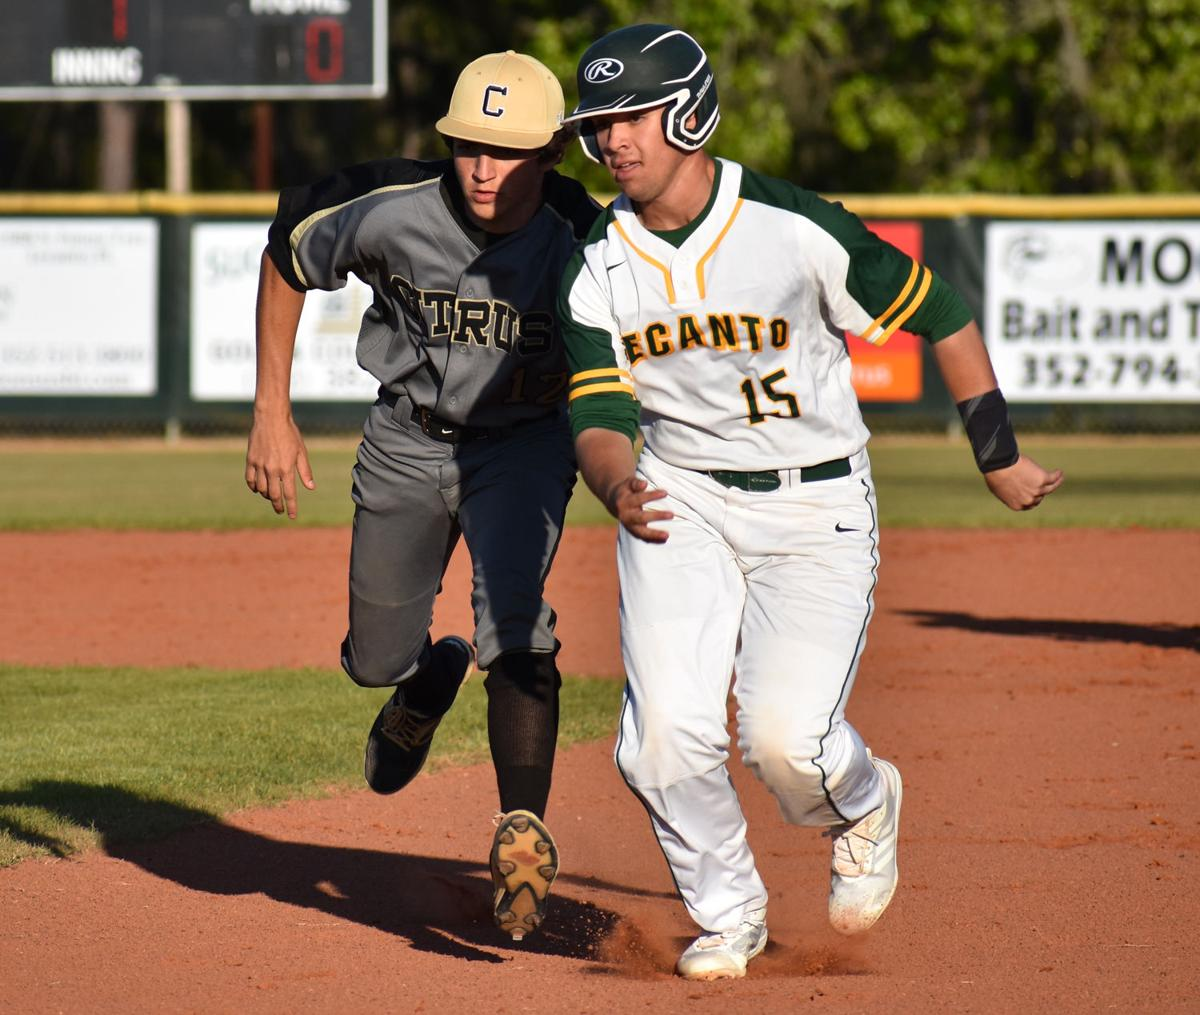 Chronicle Rental Finder: Citrus Holds Off Lecanto Rally, 6-4